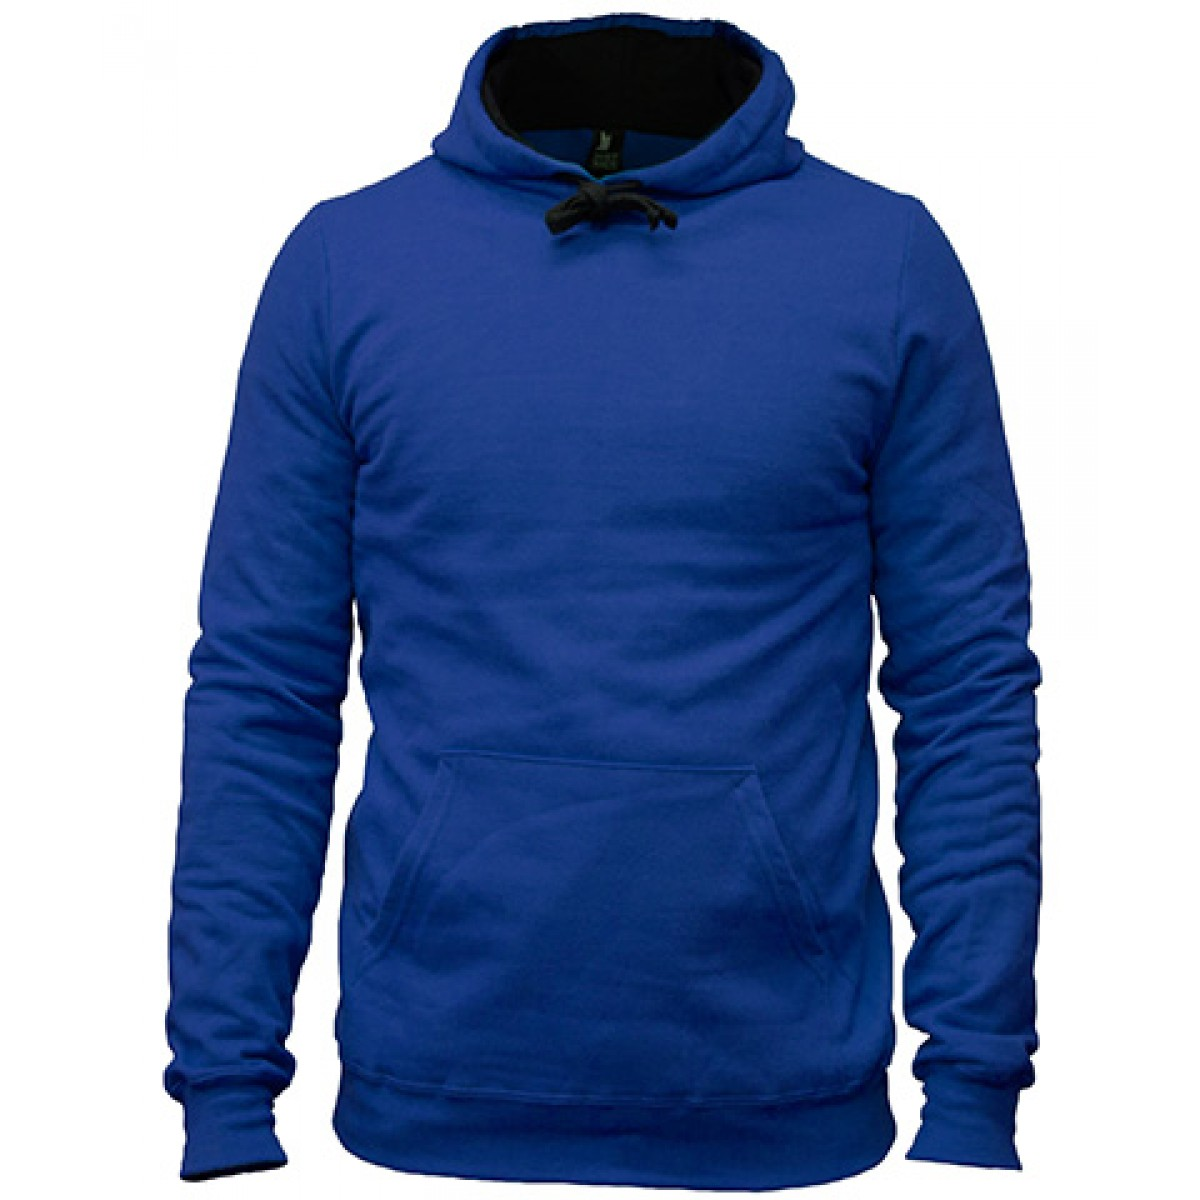 Concert Fleece Hoodie-Royal Blue-L